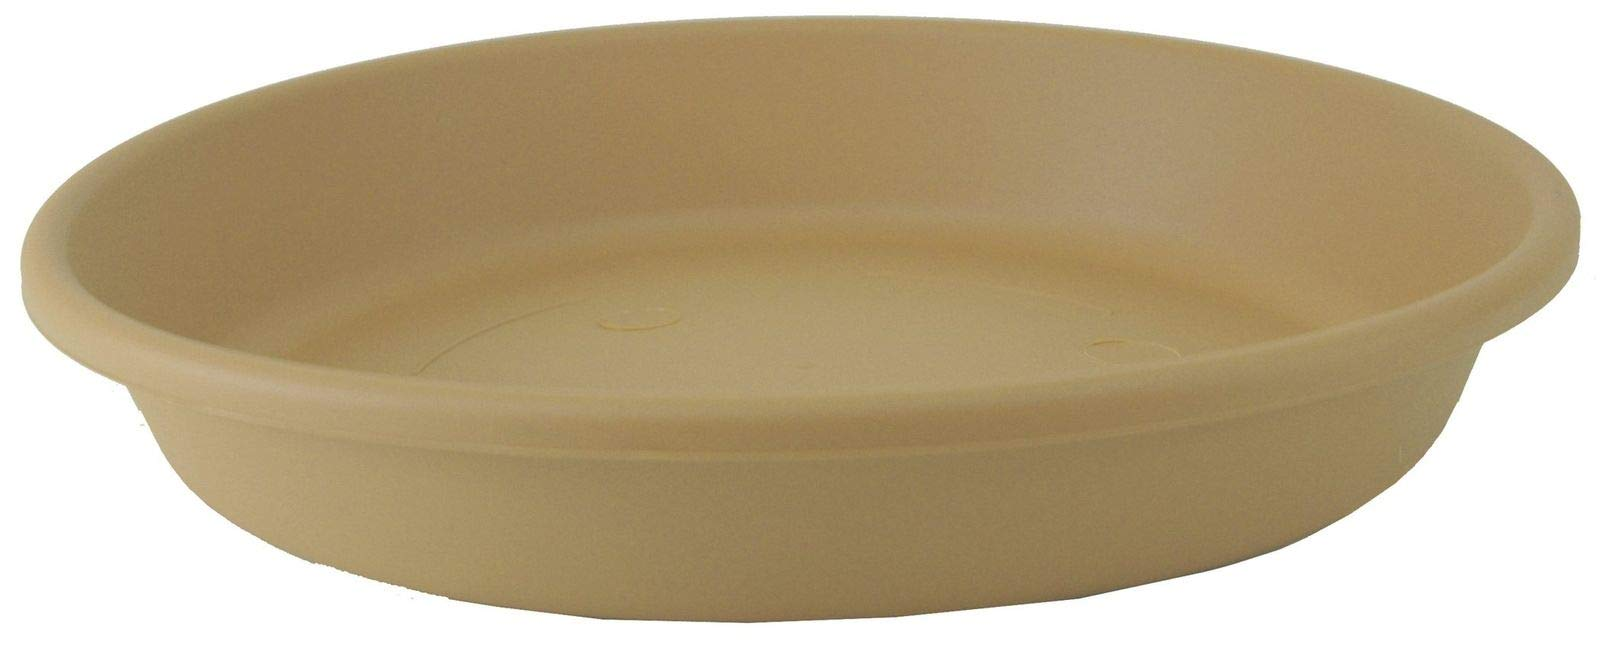 Tuweep Akro Mils SLI12000A34 Classic Saucer for 12-Inch Classic Pot Sandstone 12.5-I by Tuweep